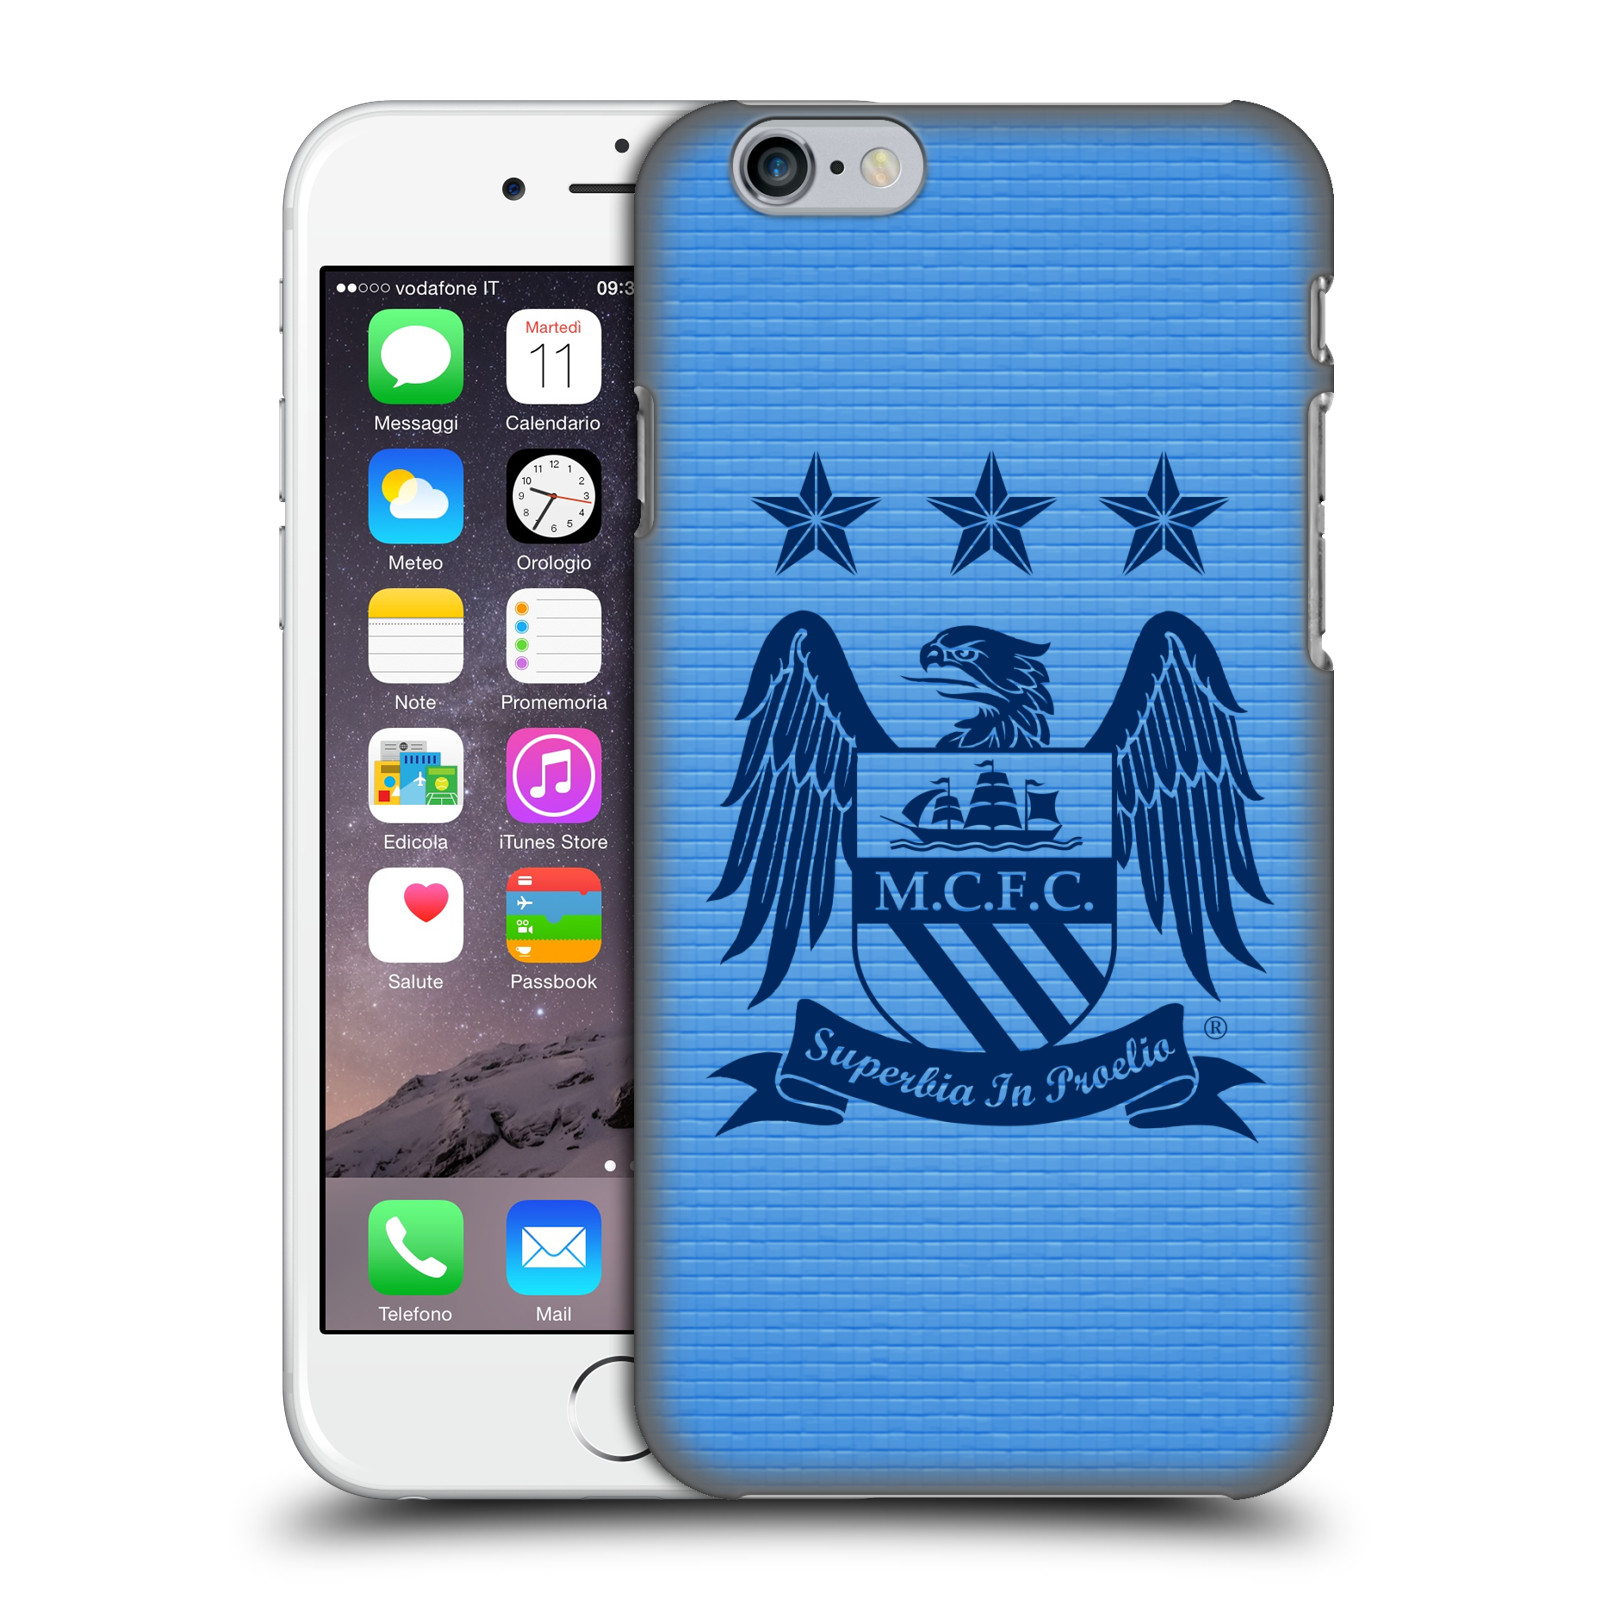 Manchester City FC MCFC Crest Pixels-Obsidian Cube on Sky Blue